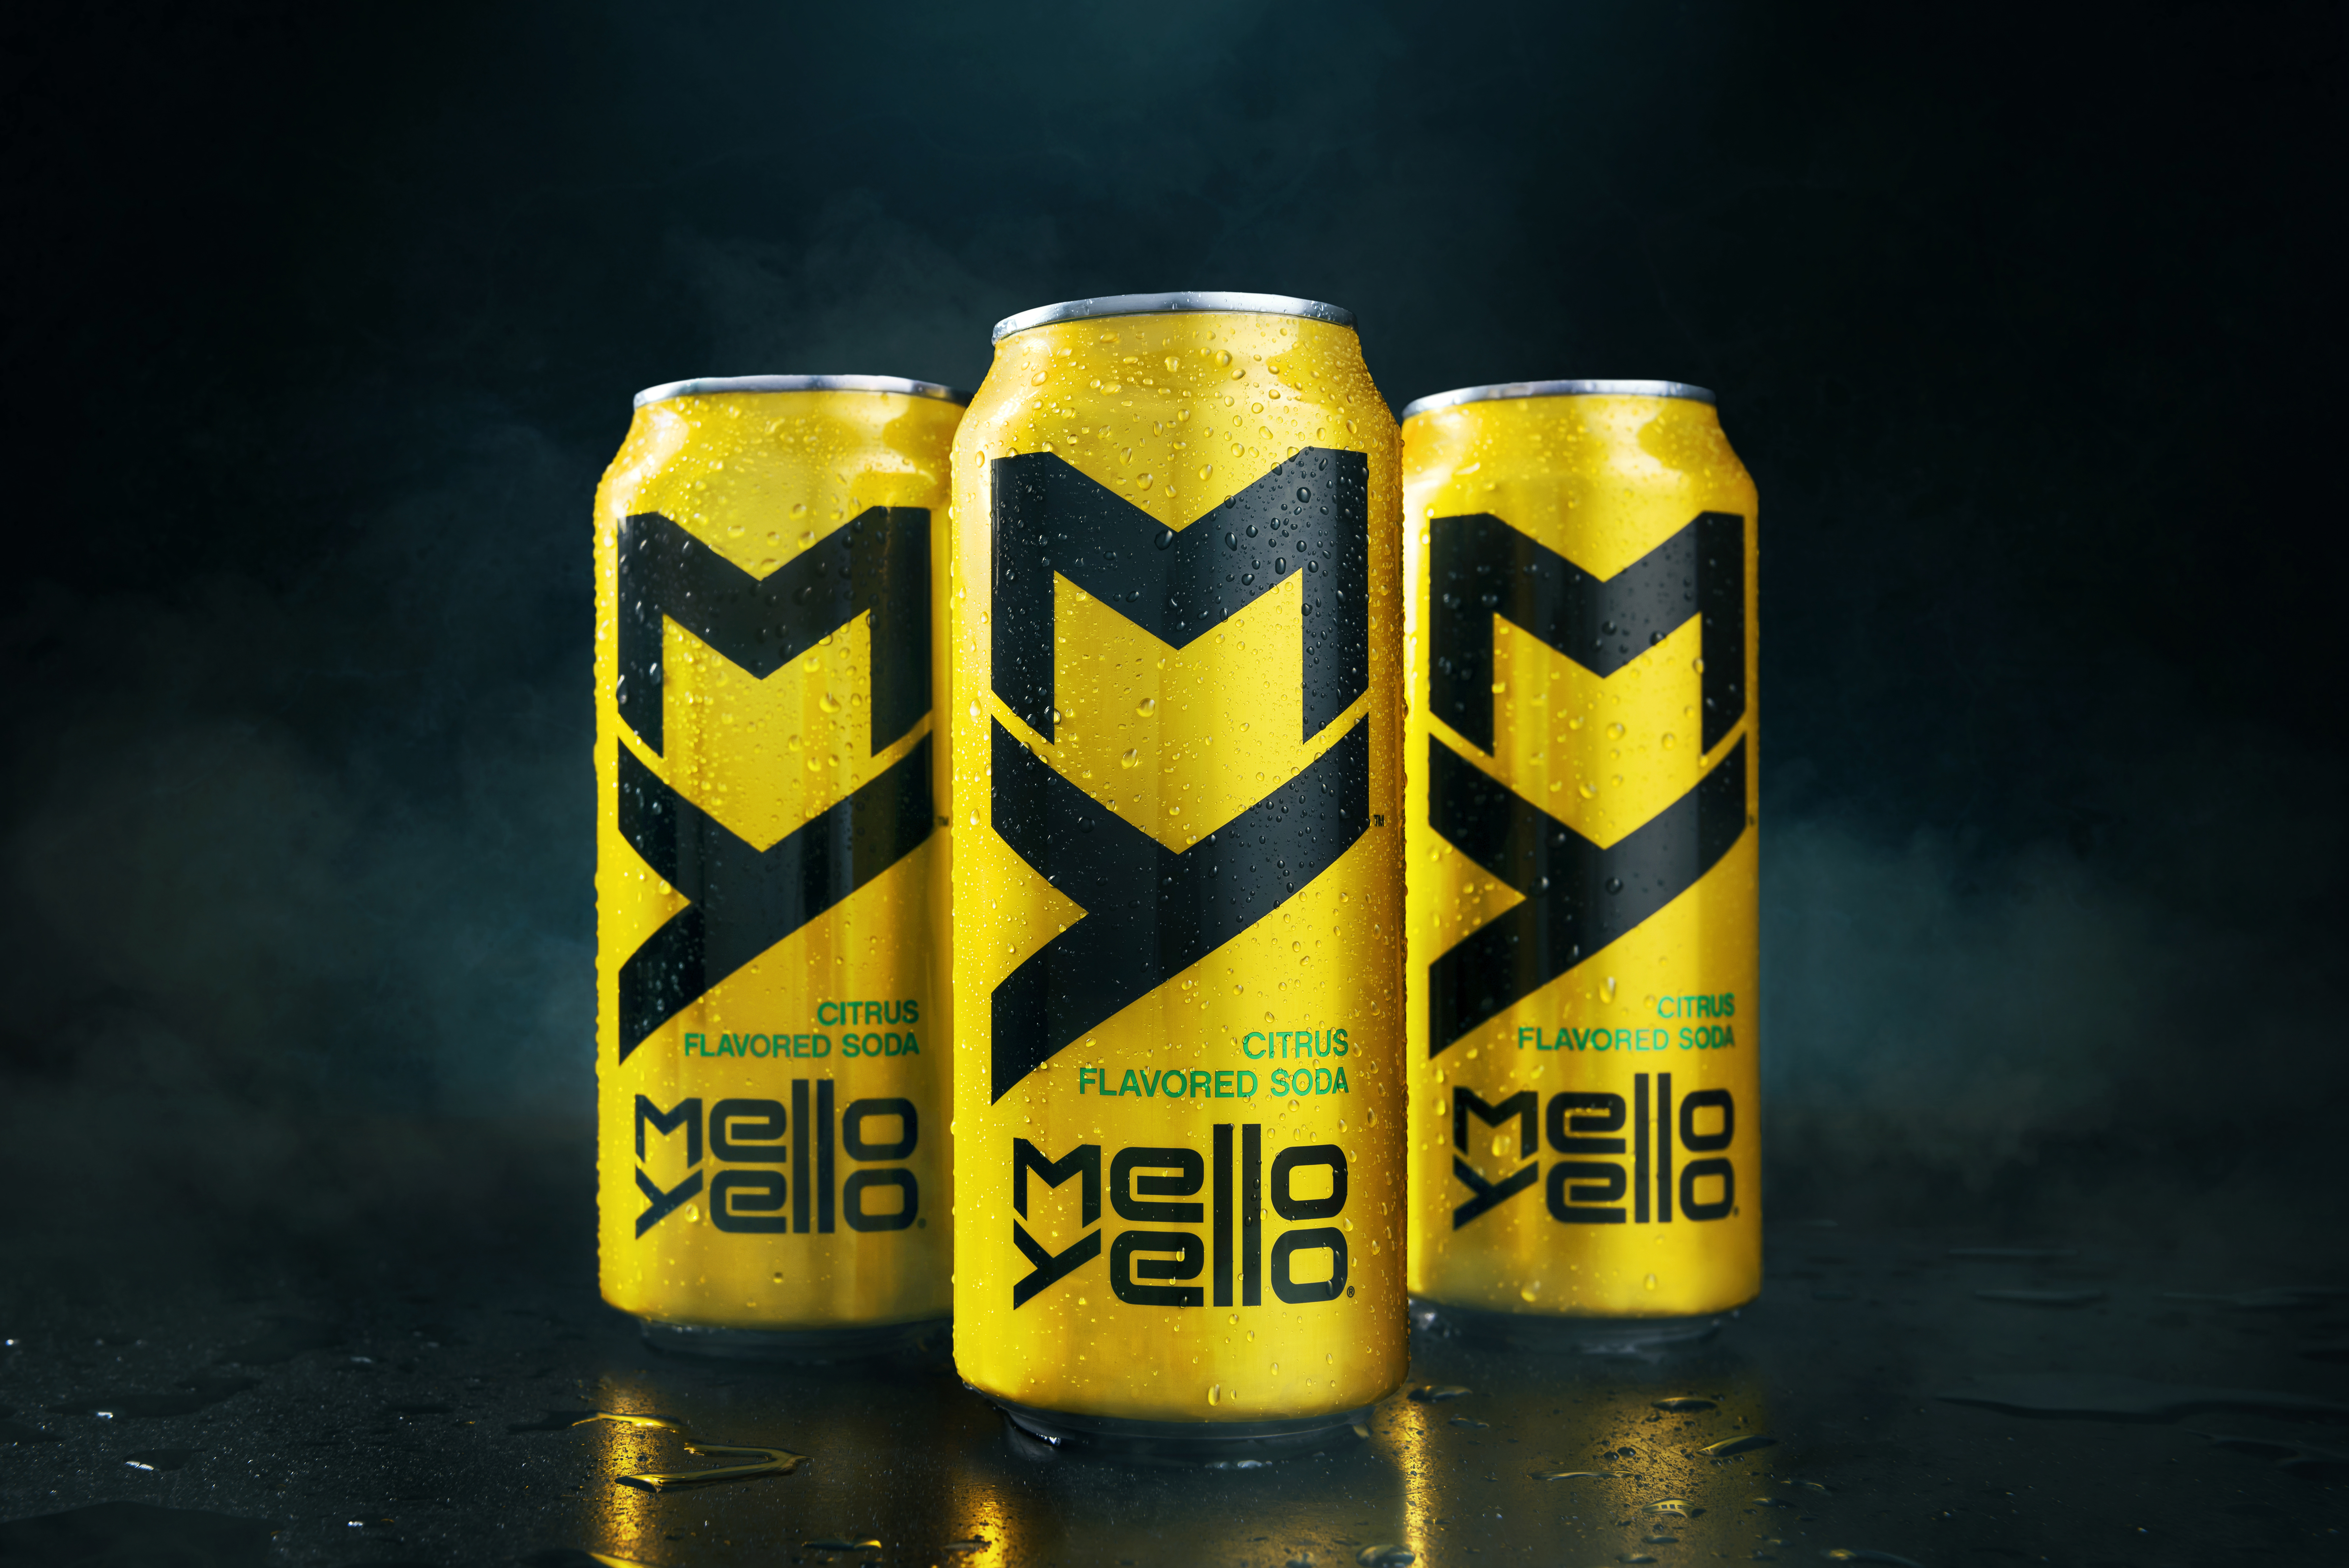 The New Look of Mello Yello is Anything but Mello.